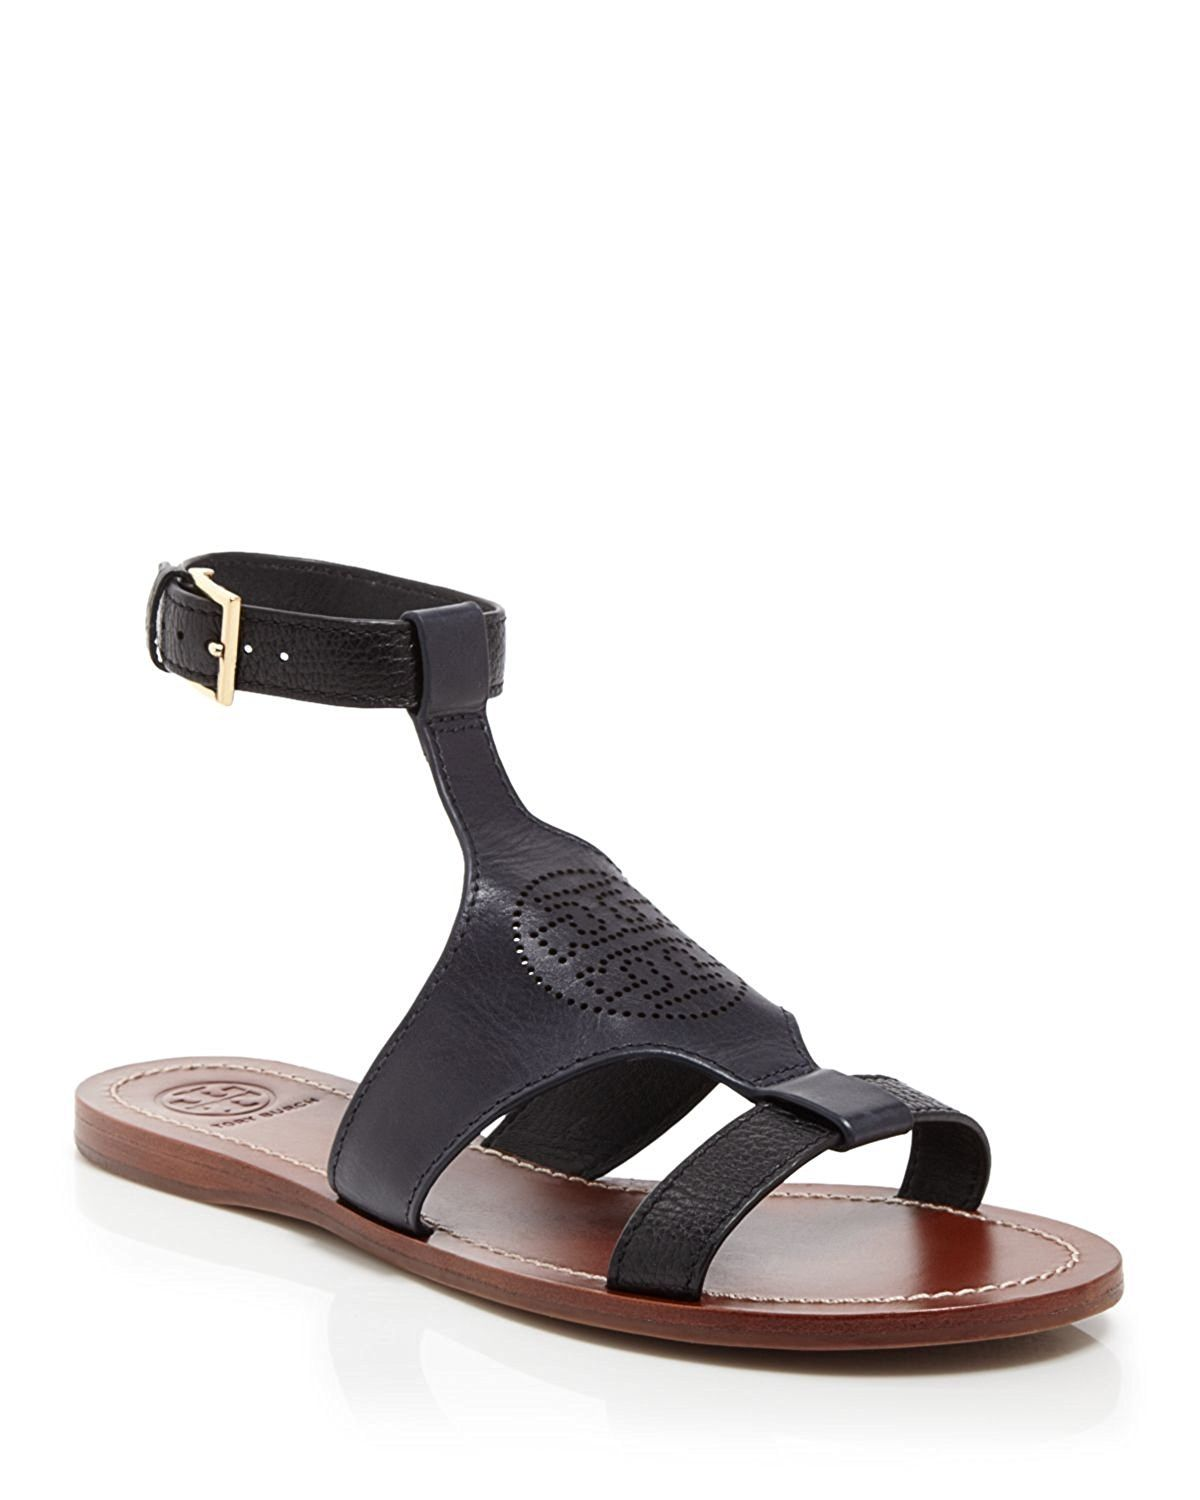 ffdada9c8 Tory Burch perforated logo flat sandal